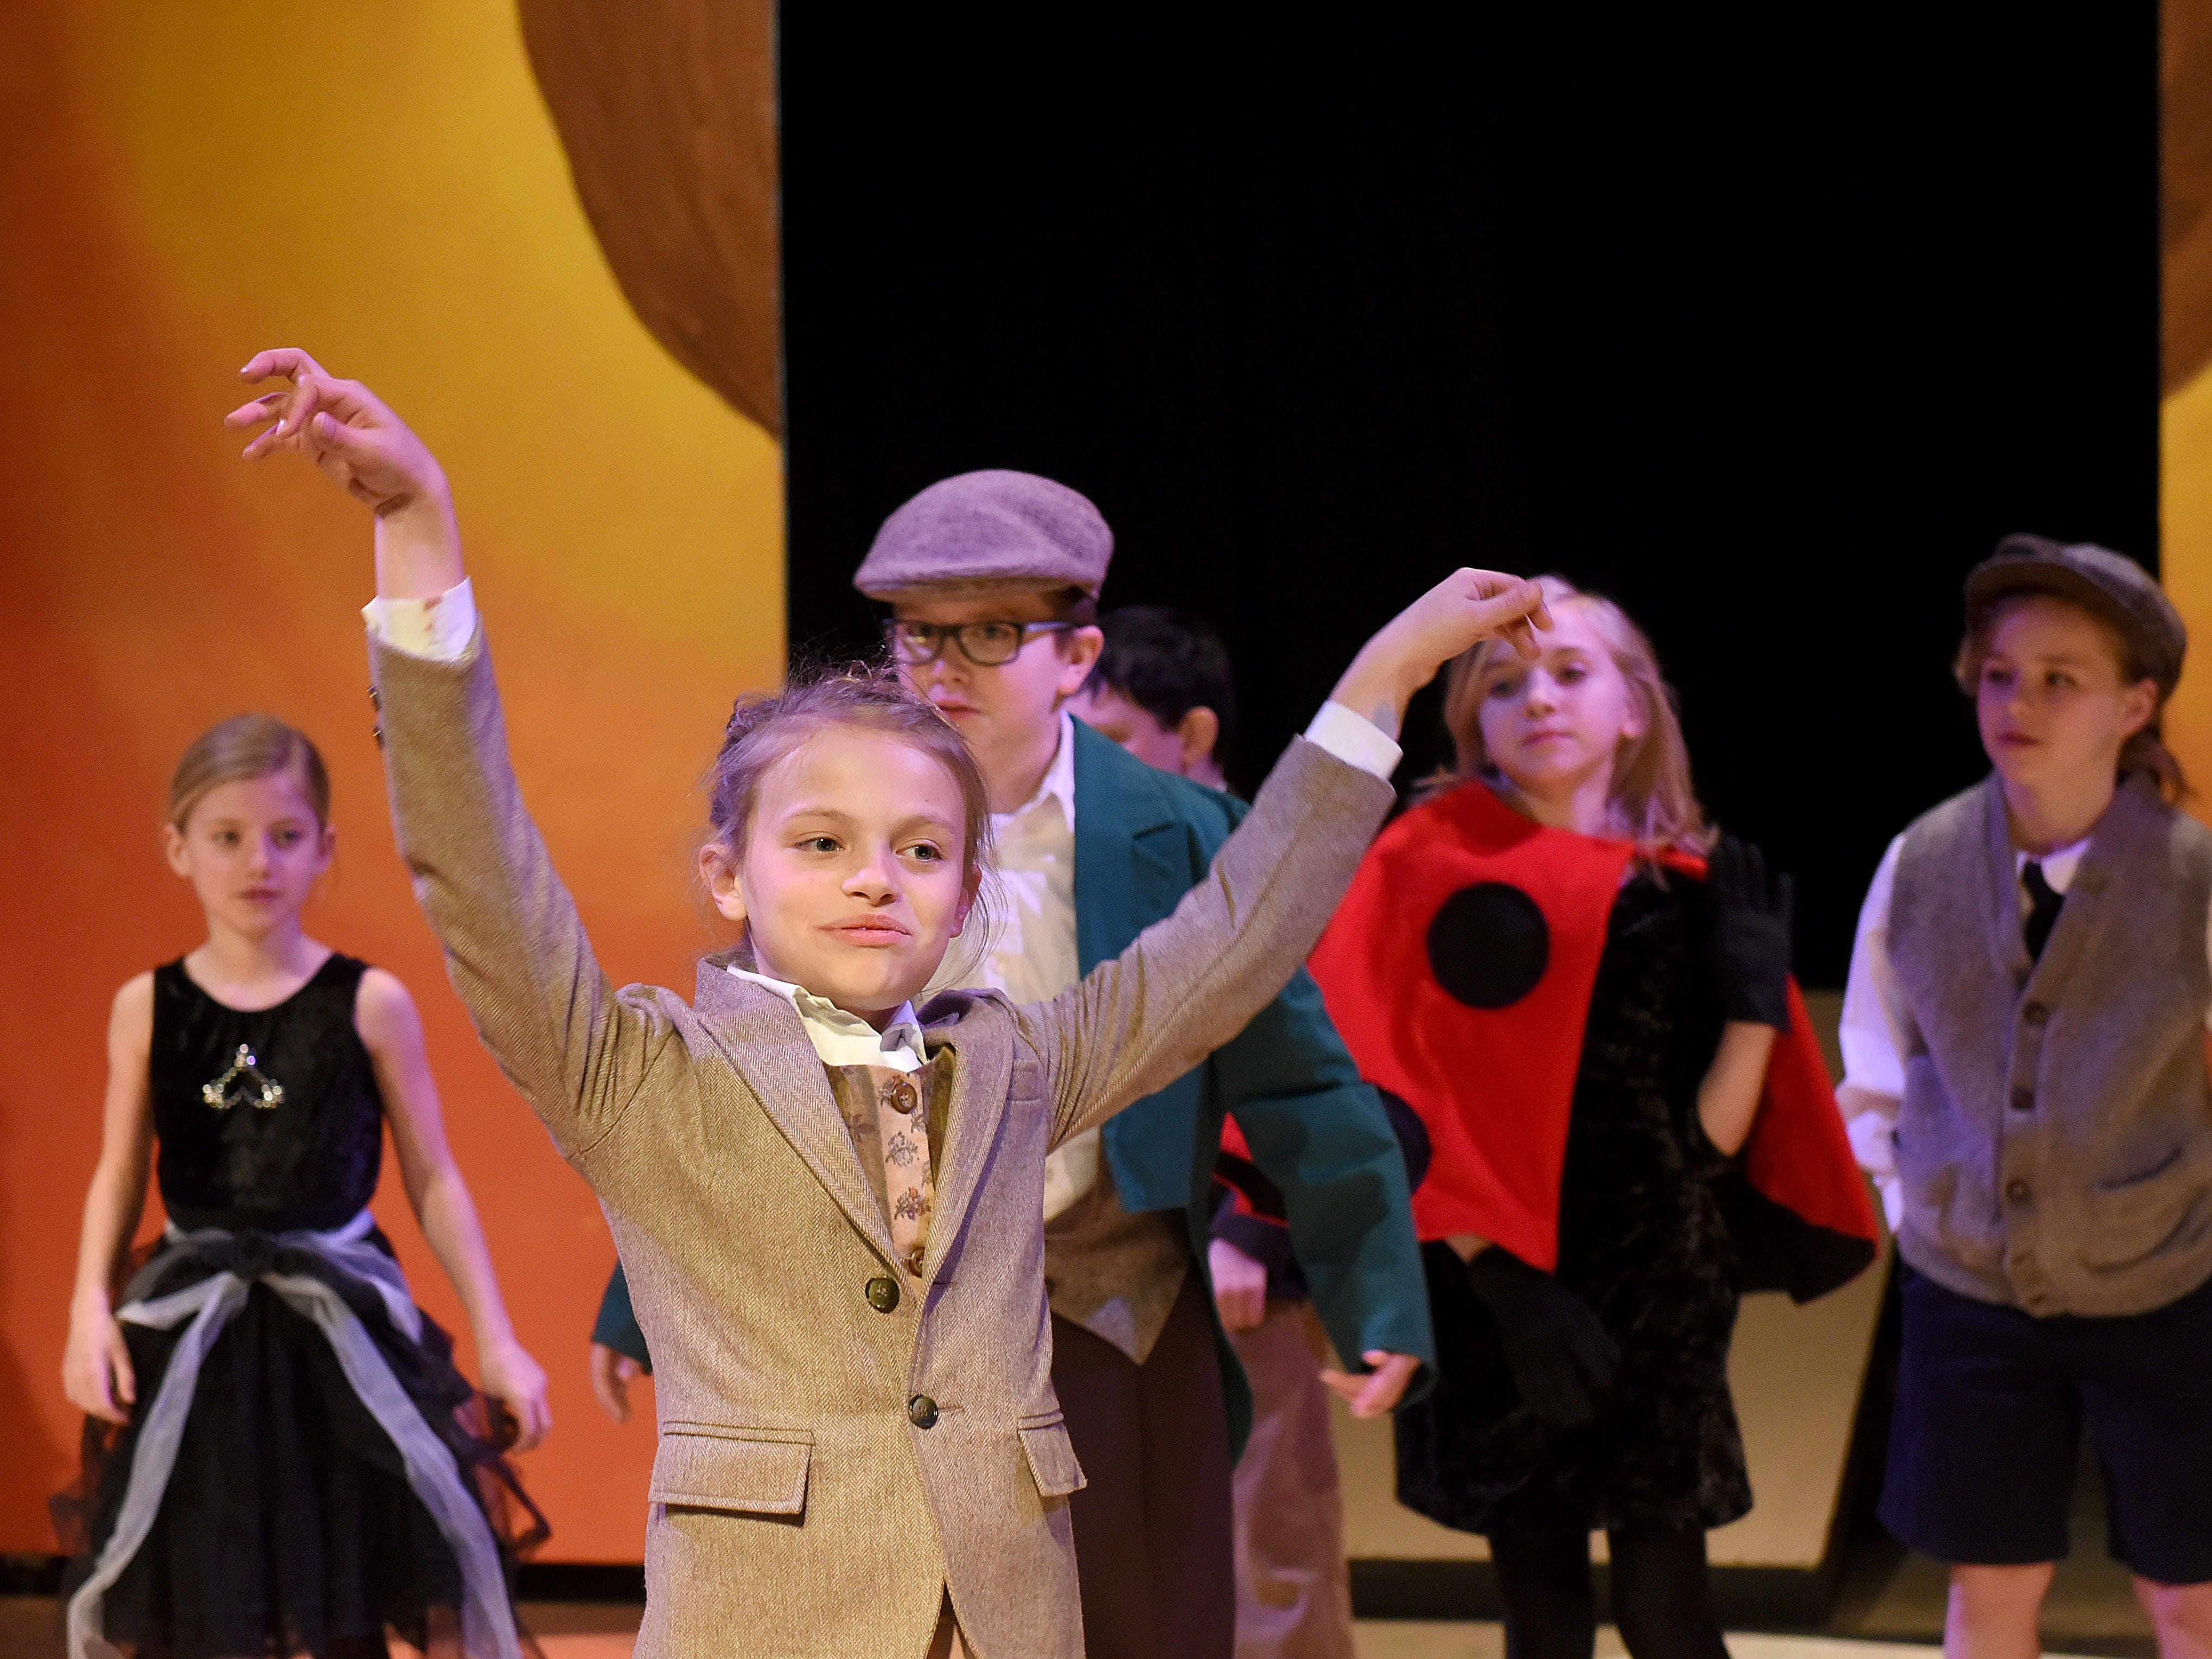 """Skye Biemesderfer, as the Earthworm, sings """"Plump and Juicy"""" as she attempts touse herself as bait for nearby seagulls to make the peach take flight during a rehearsal for Weathervane Young Artists' Repertory Theatre's production of James and the Giant Peach. The musical, based on the novel by Roald Dahl, begins on Friday, April 5."""